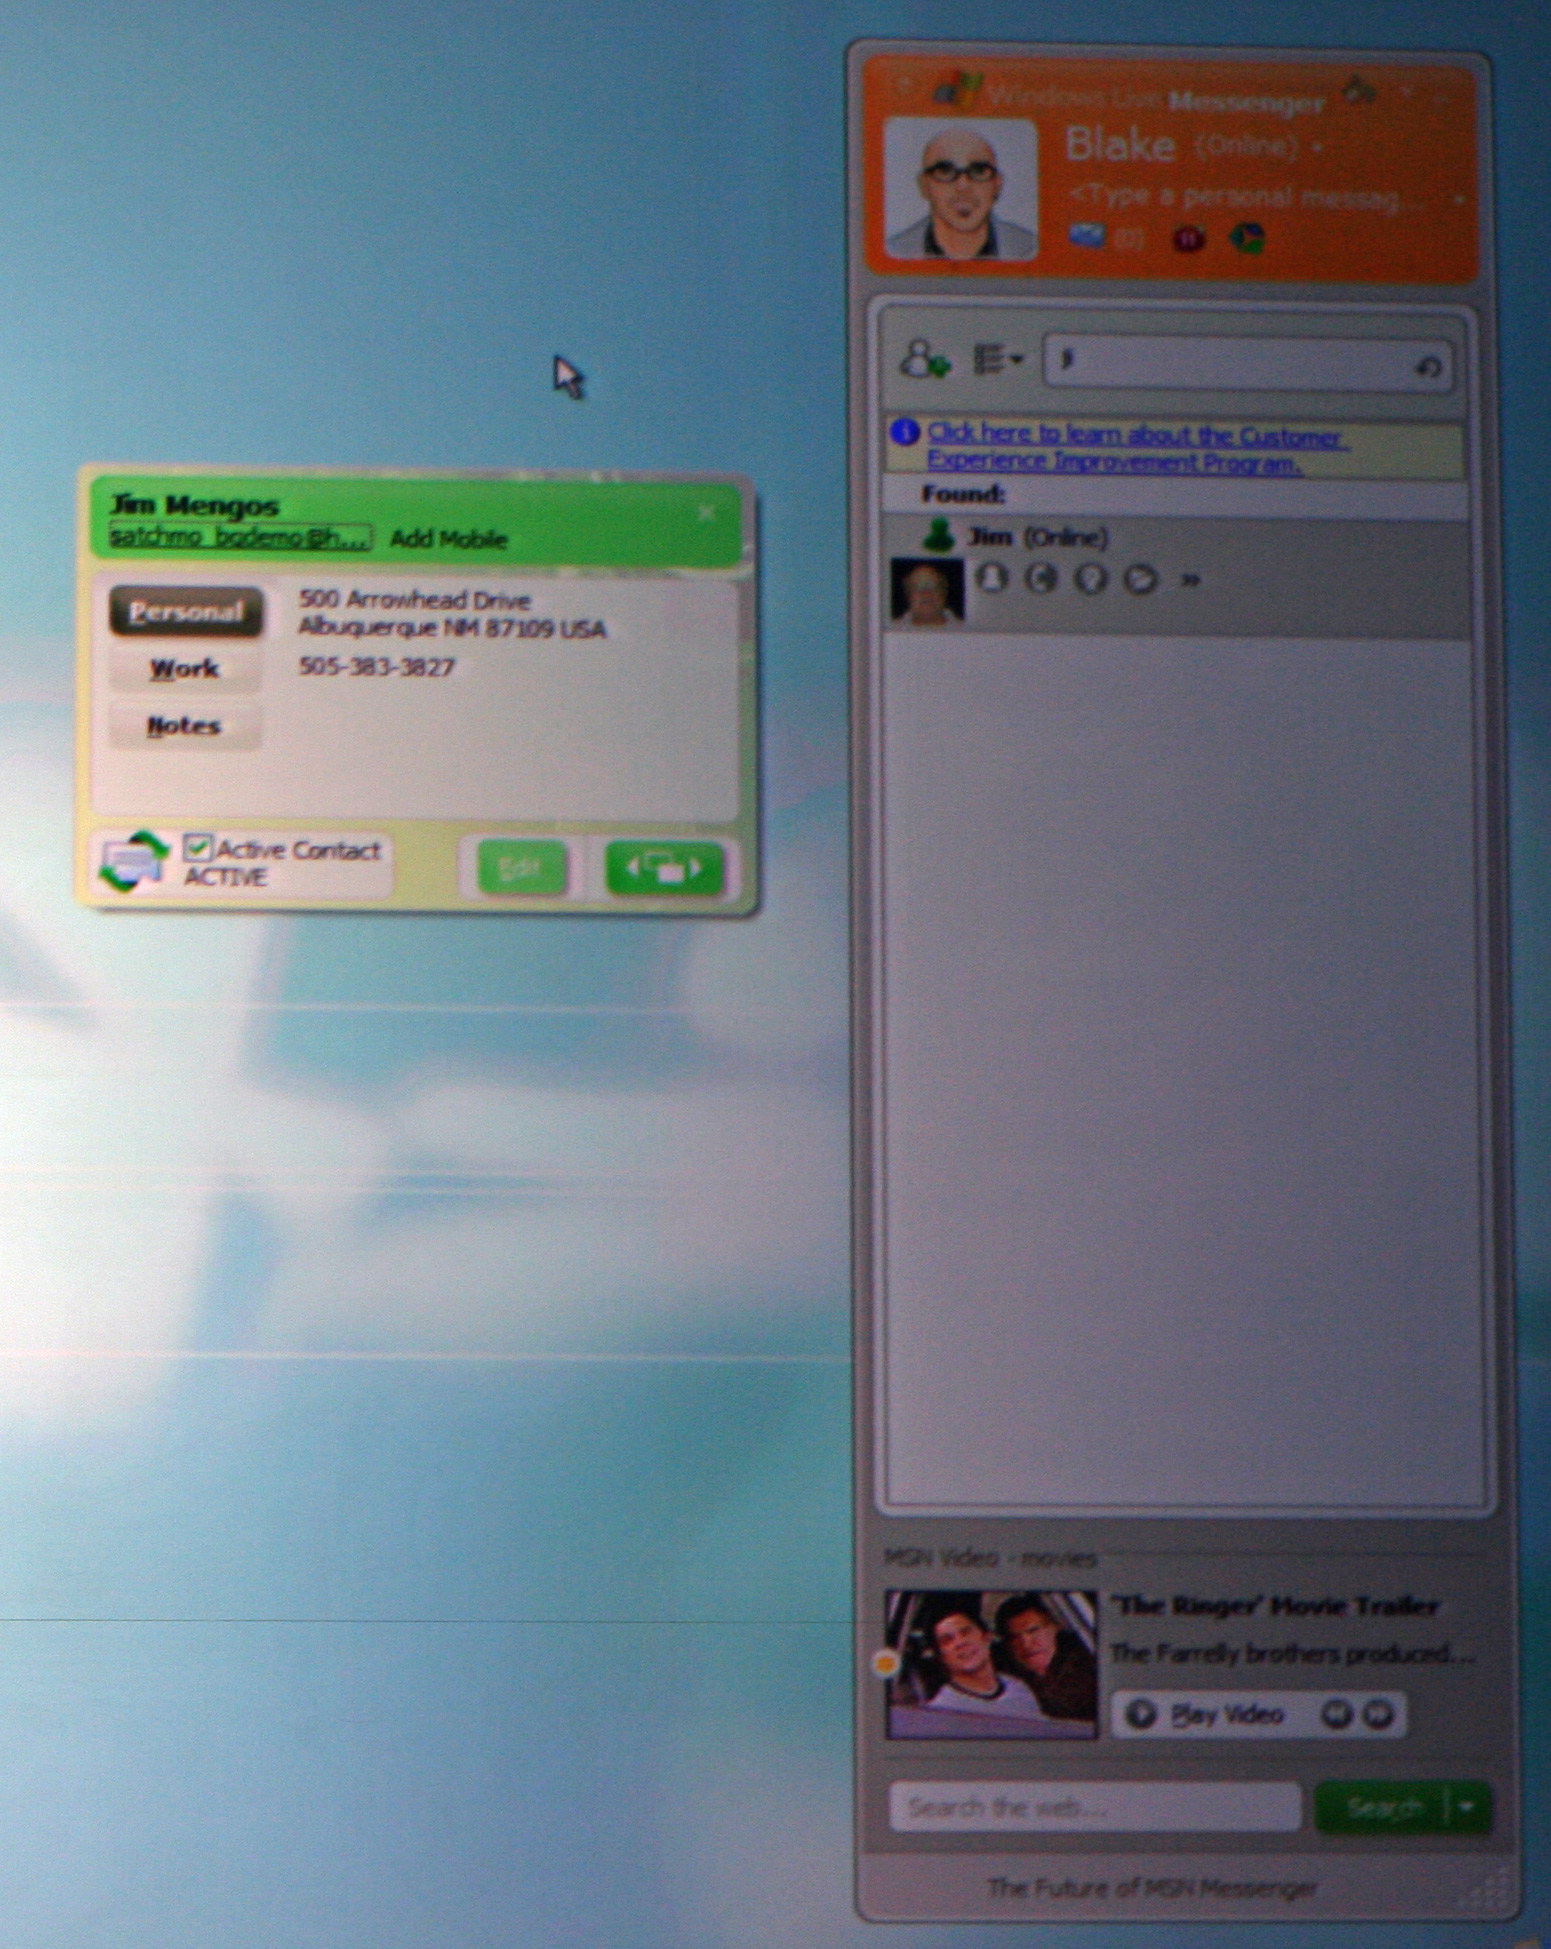 Window Live Messenger Windows Live Messenger And Mail Niall Kennedy